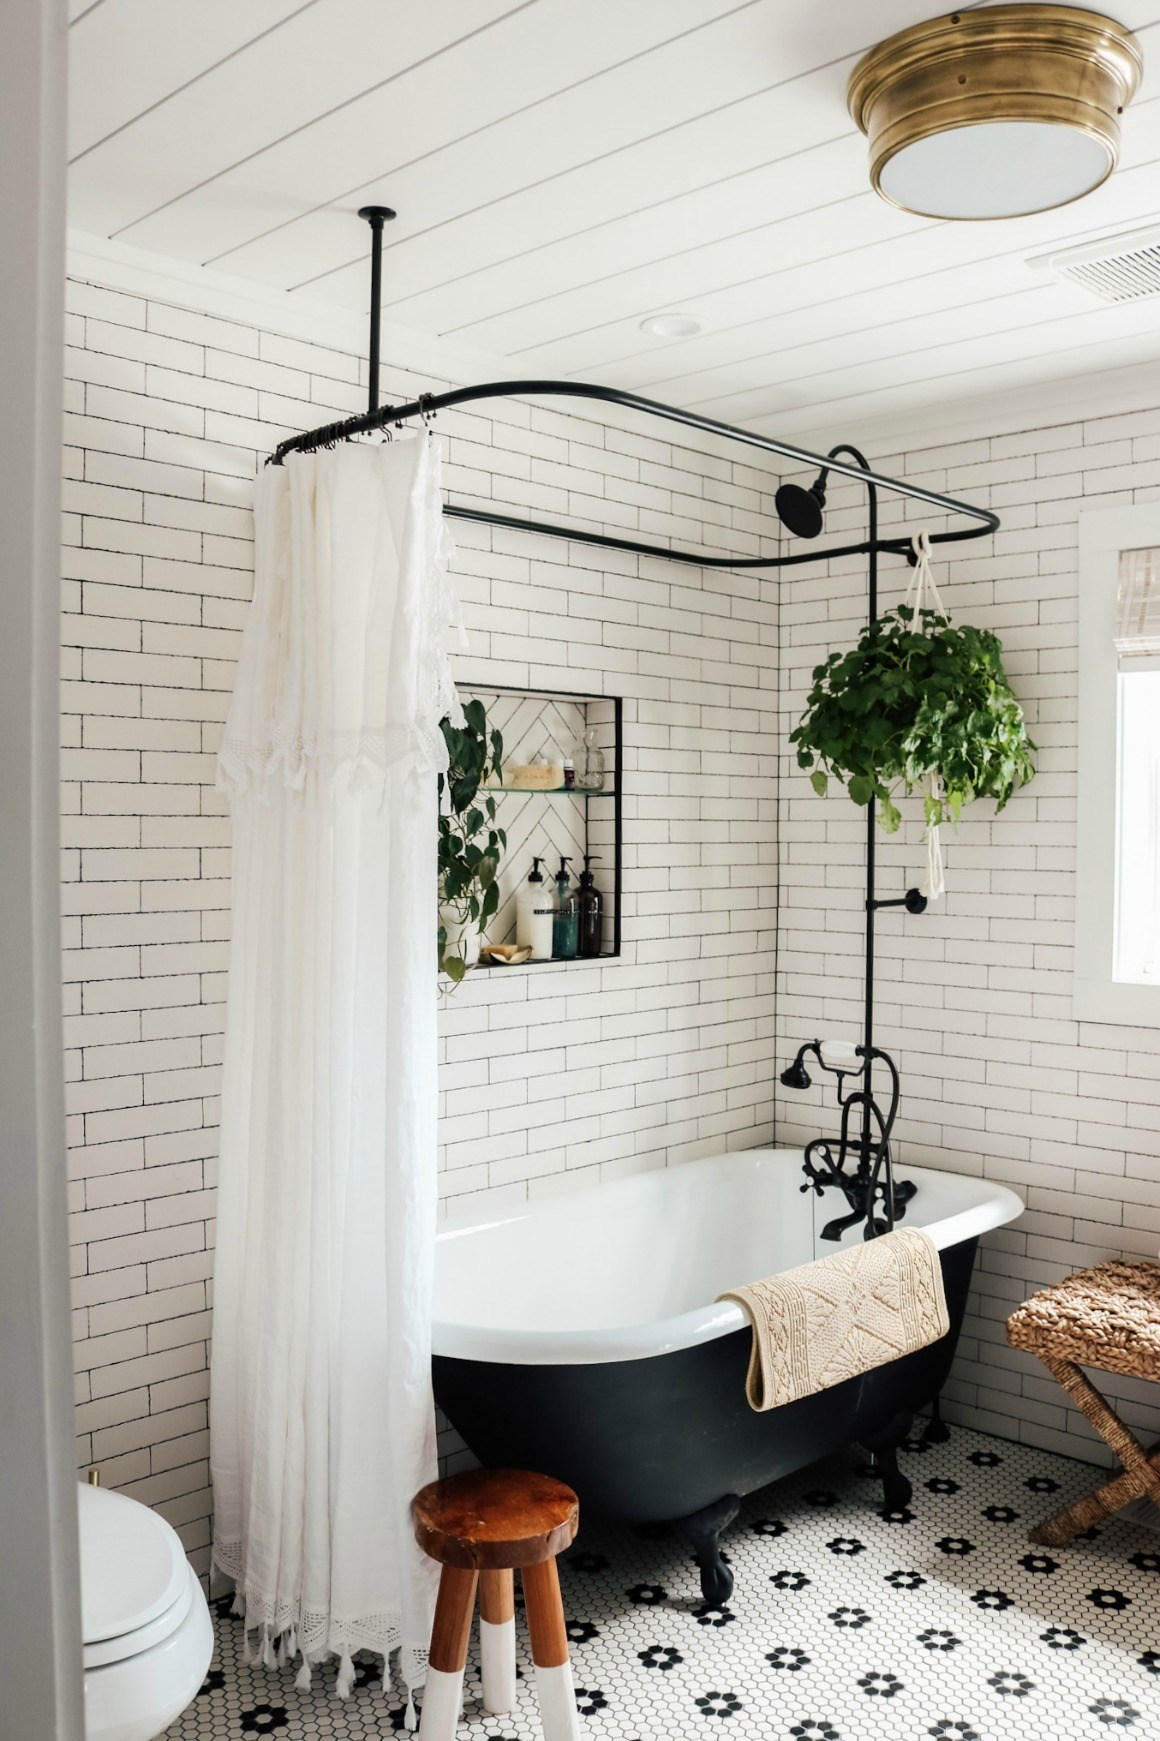 Master bathroom remodel at Nesting with Grace using a black clawfoot tub and classix hex tile.